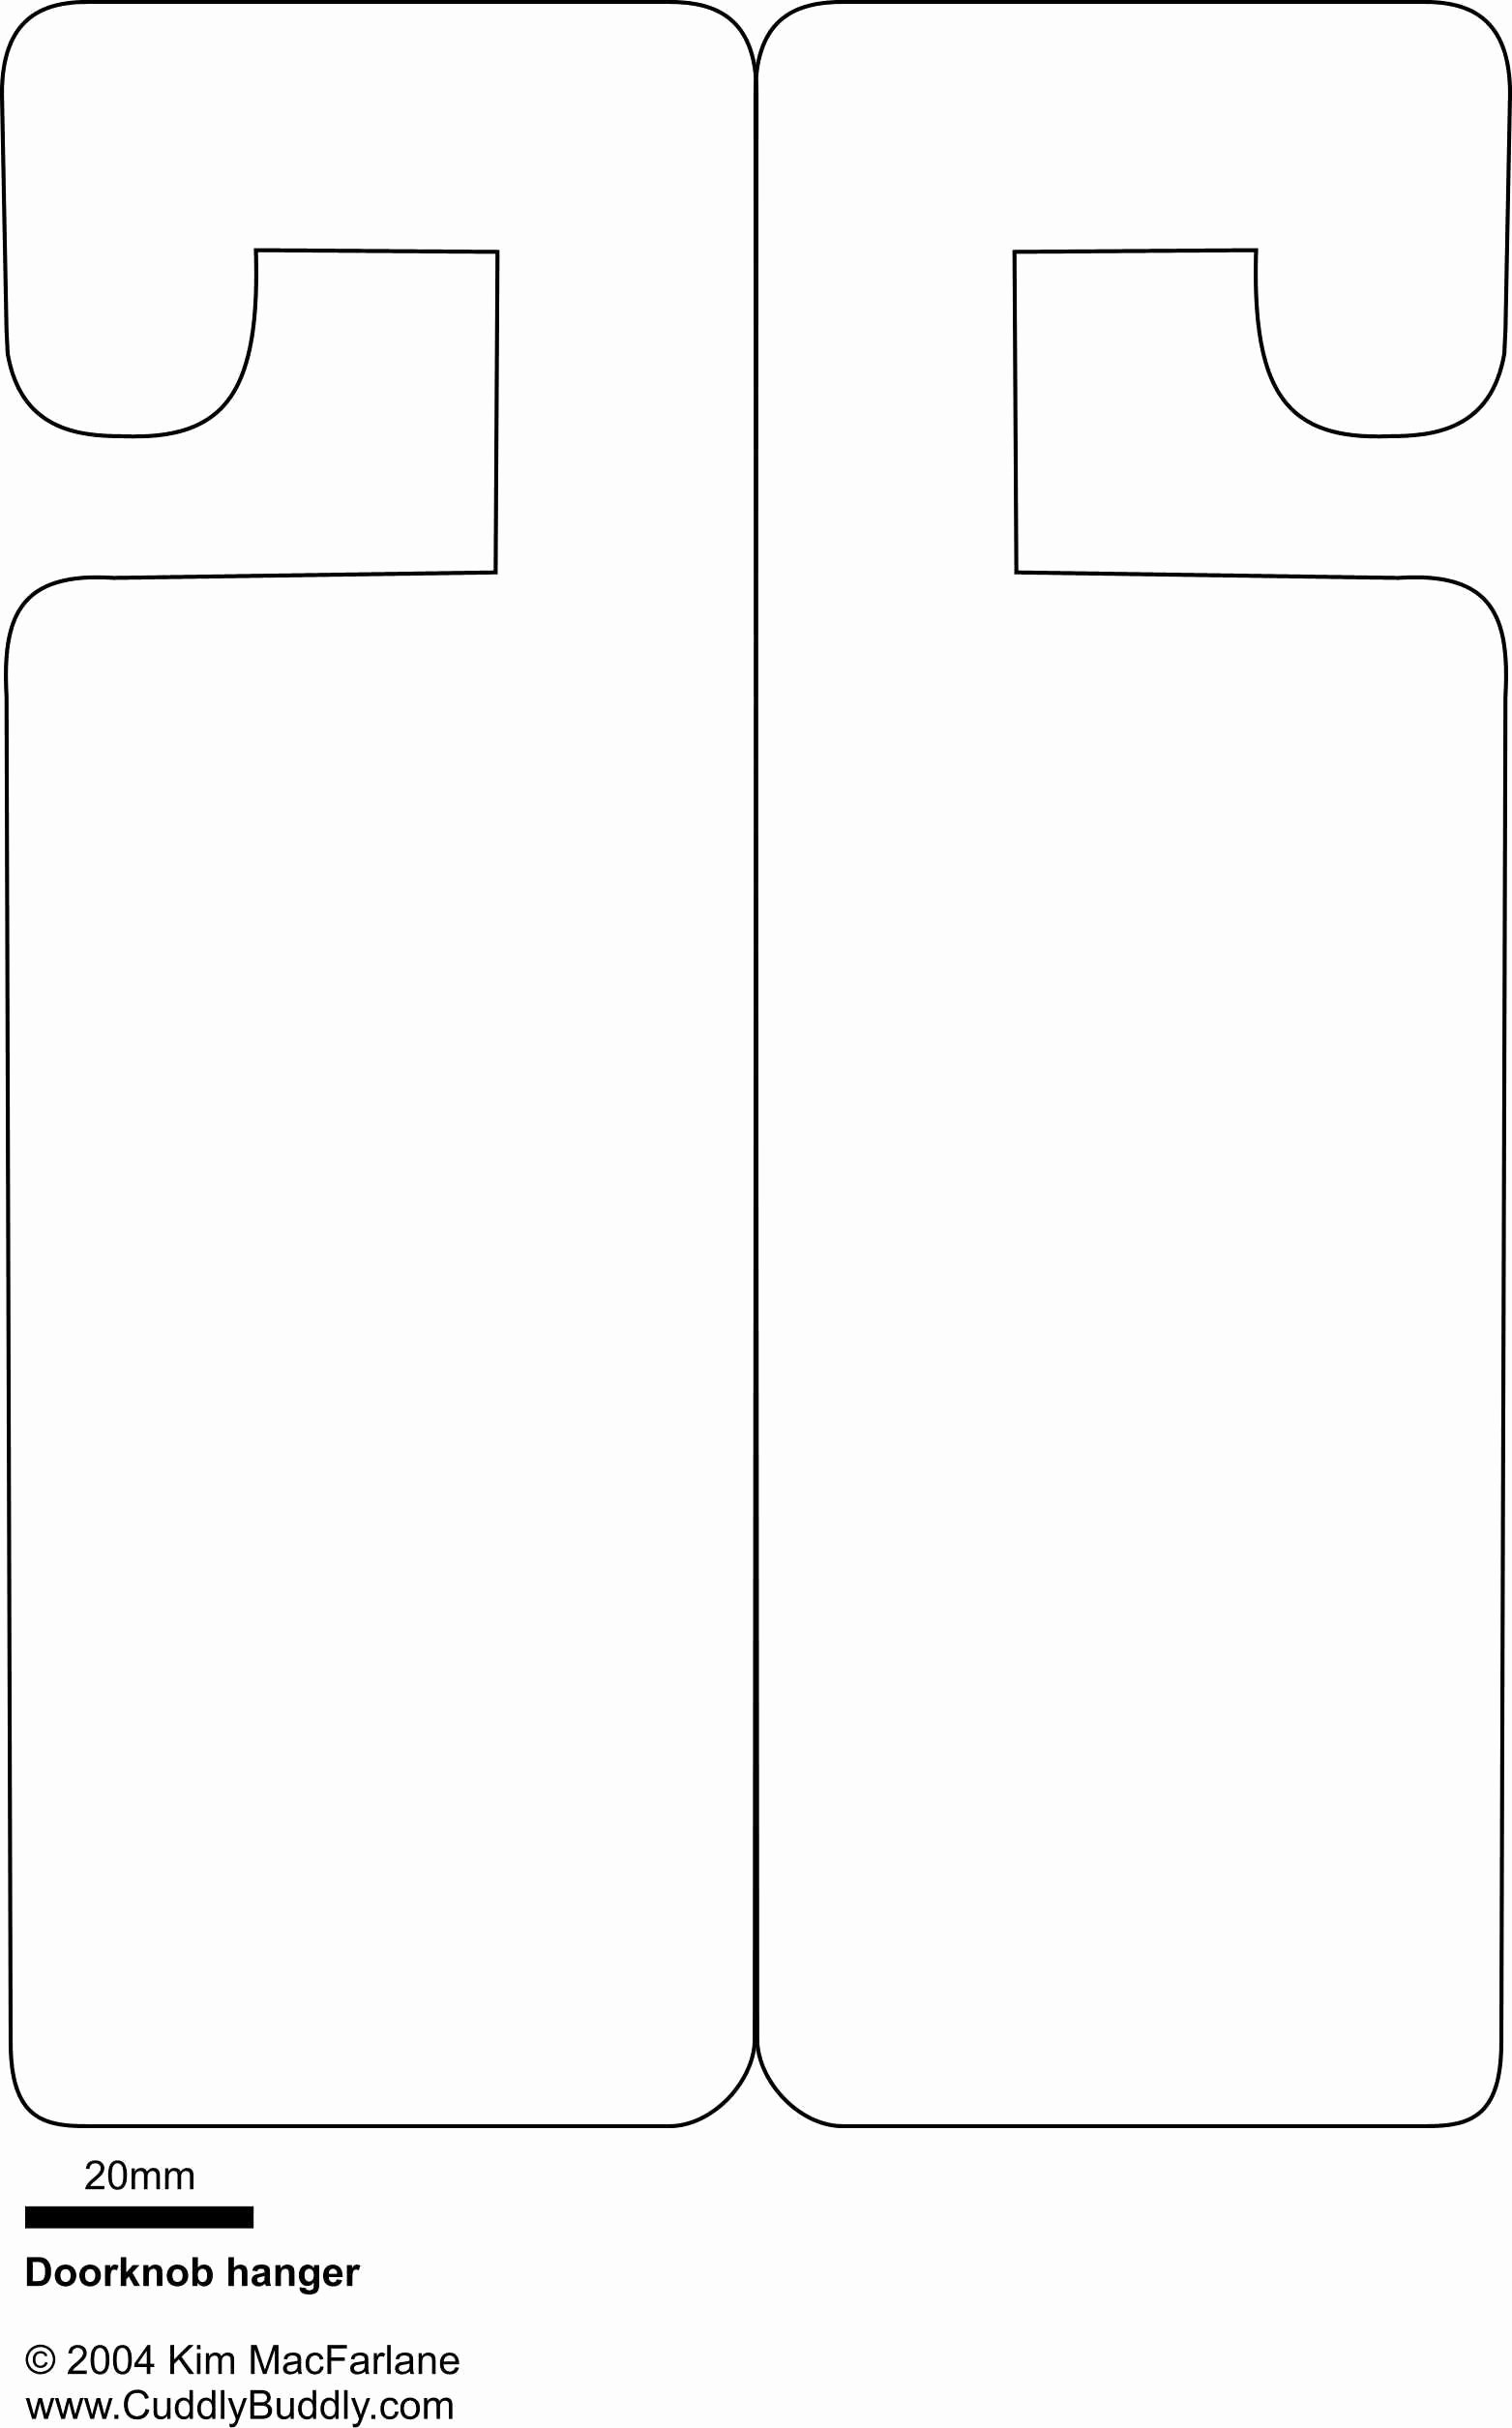 Door Hanger Template Publisher Elegant Doorknob Hanger Template something to Occupy the Kids On